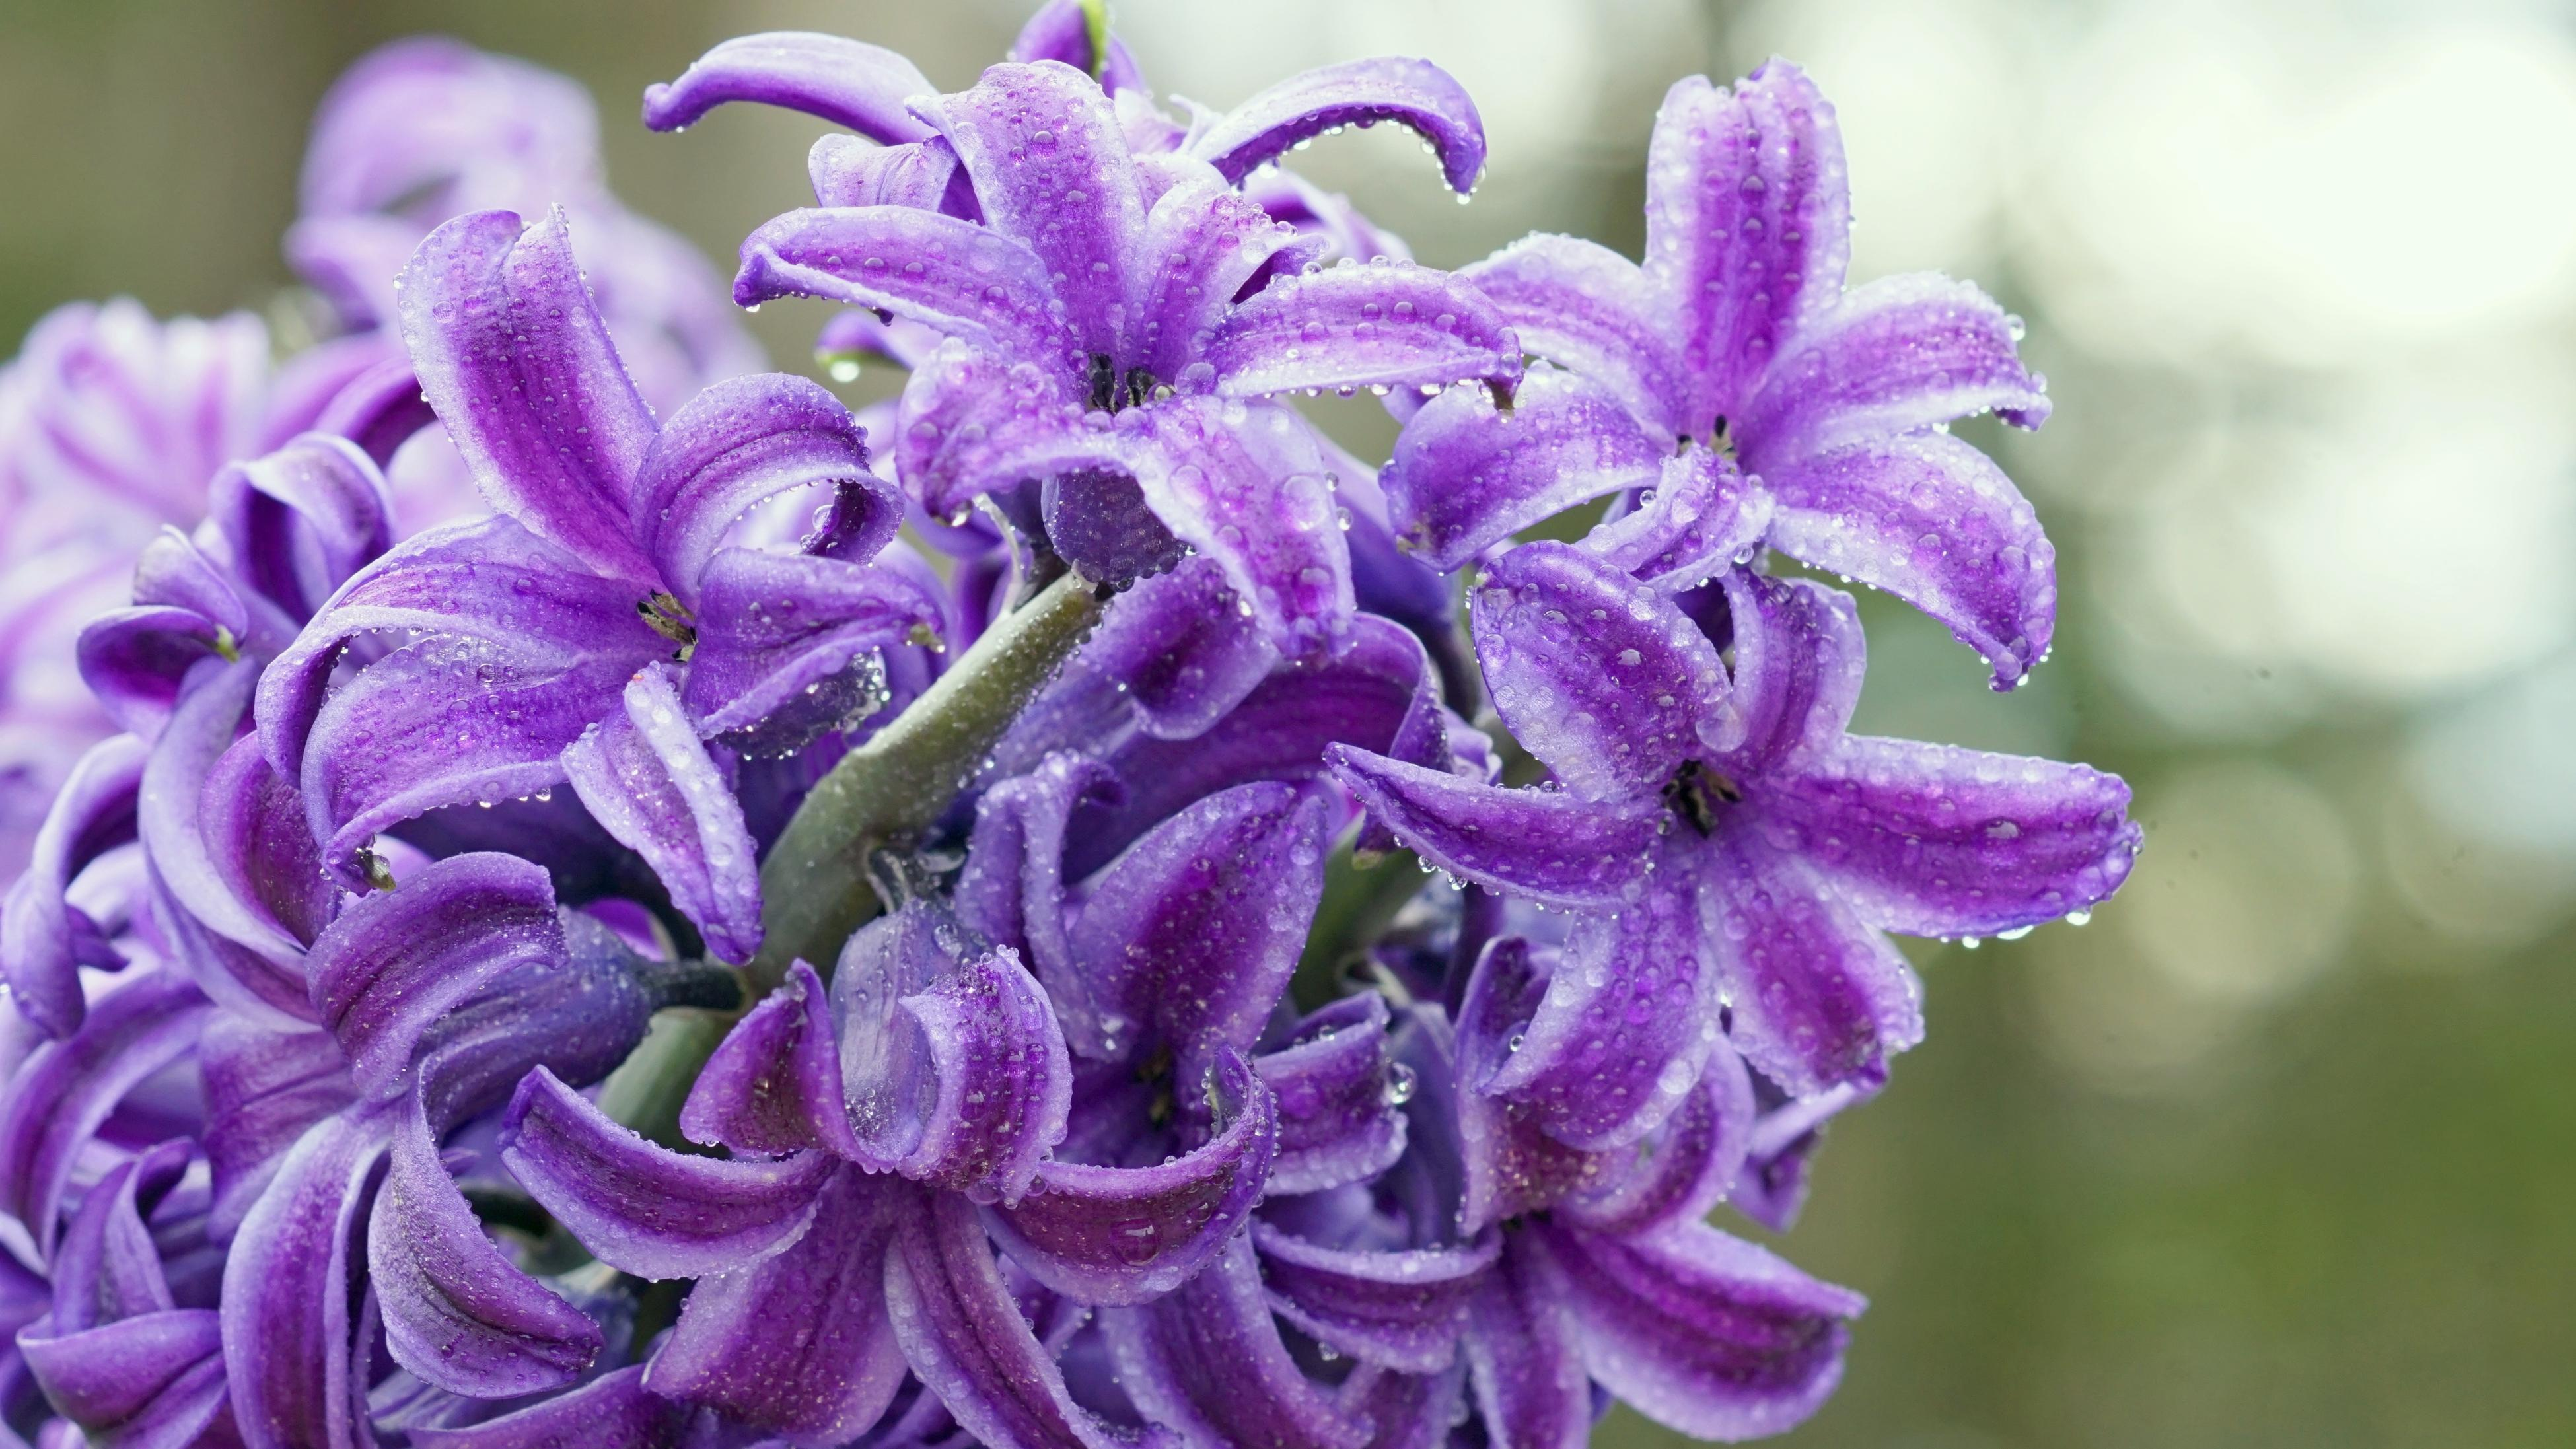 A purple hyacinth flower covered in water droplets